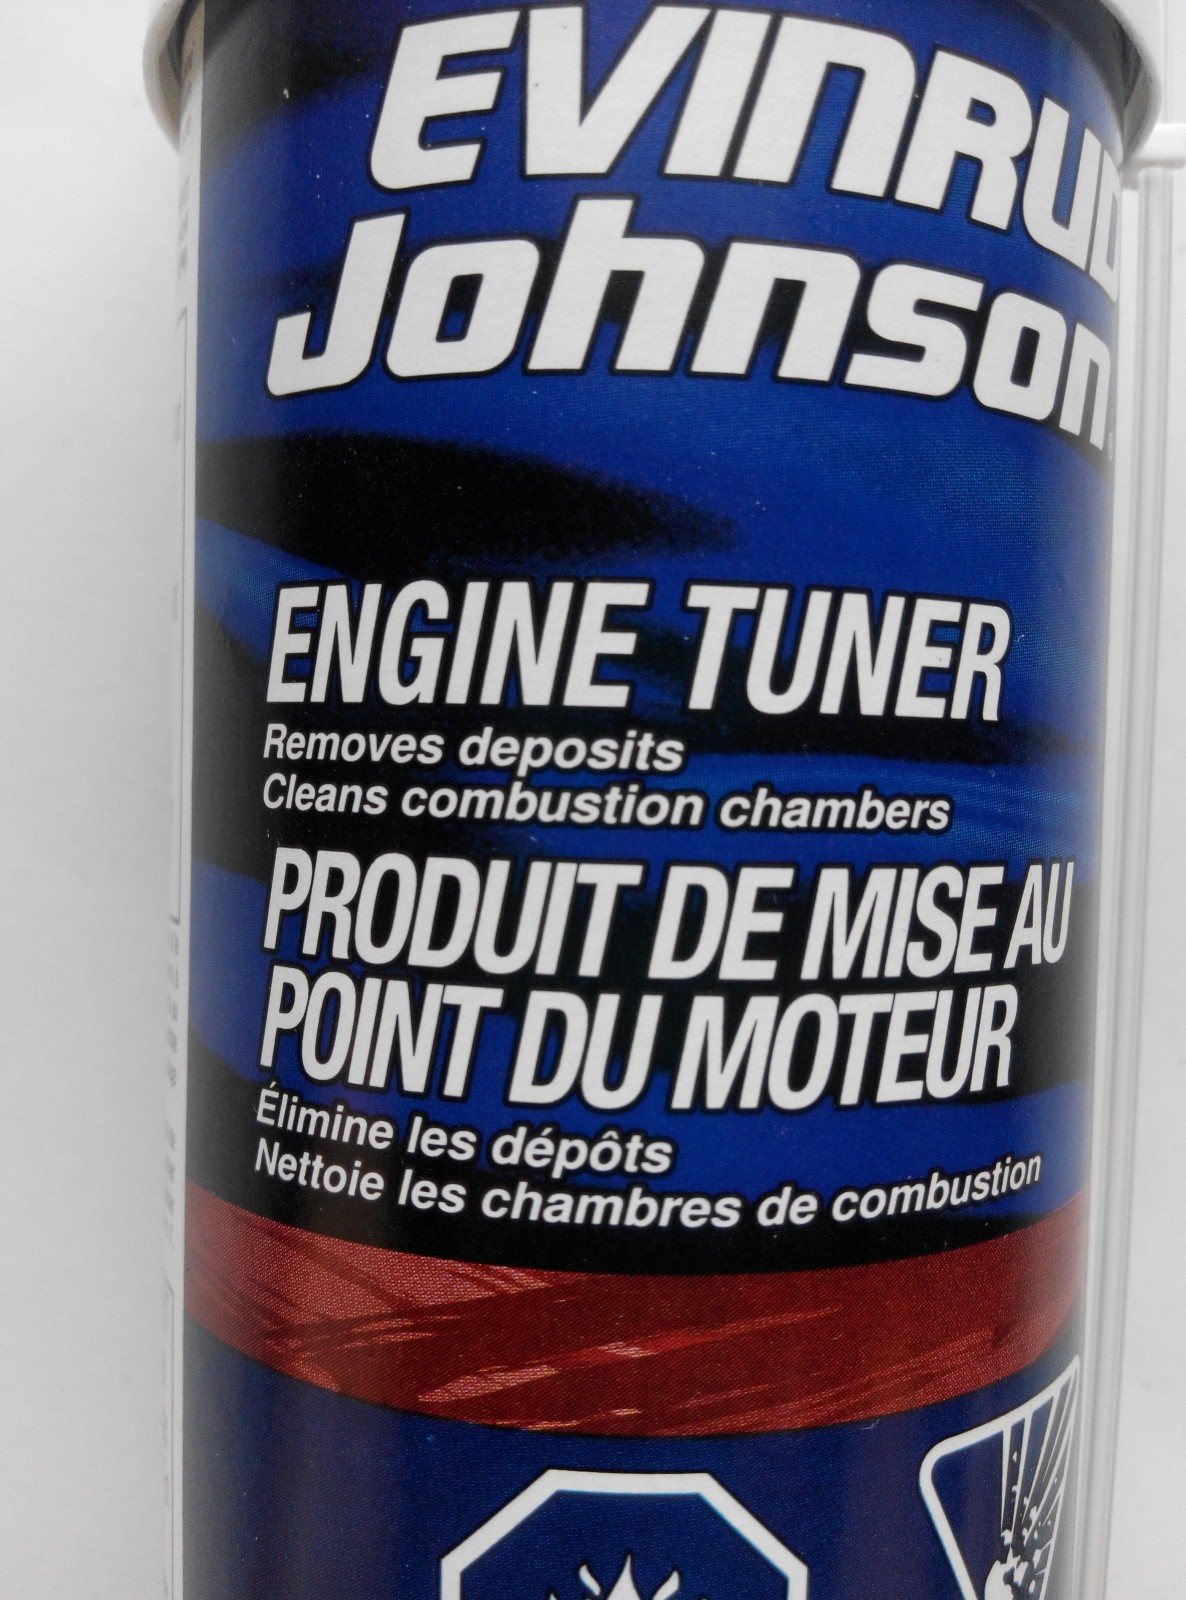 Outboard engine tuner spray 2017 2018 2019 ford price for Outboard motor reviews 2017